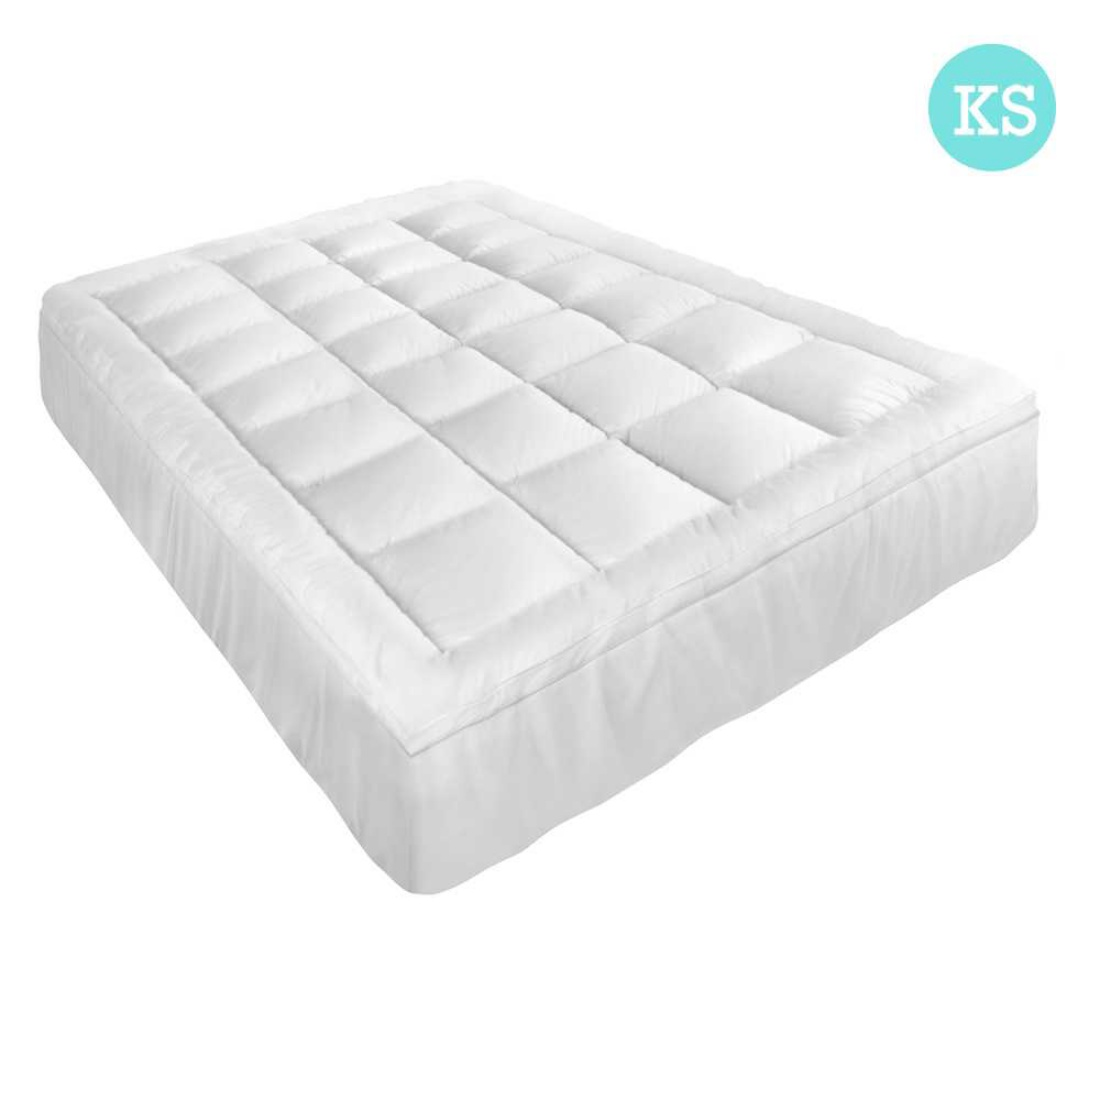 King Single Pillowtop Mattress Topper Memory Resistant Protector Pad Cover